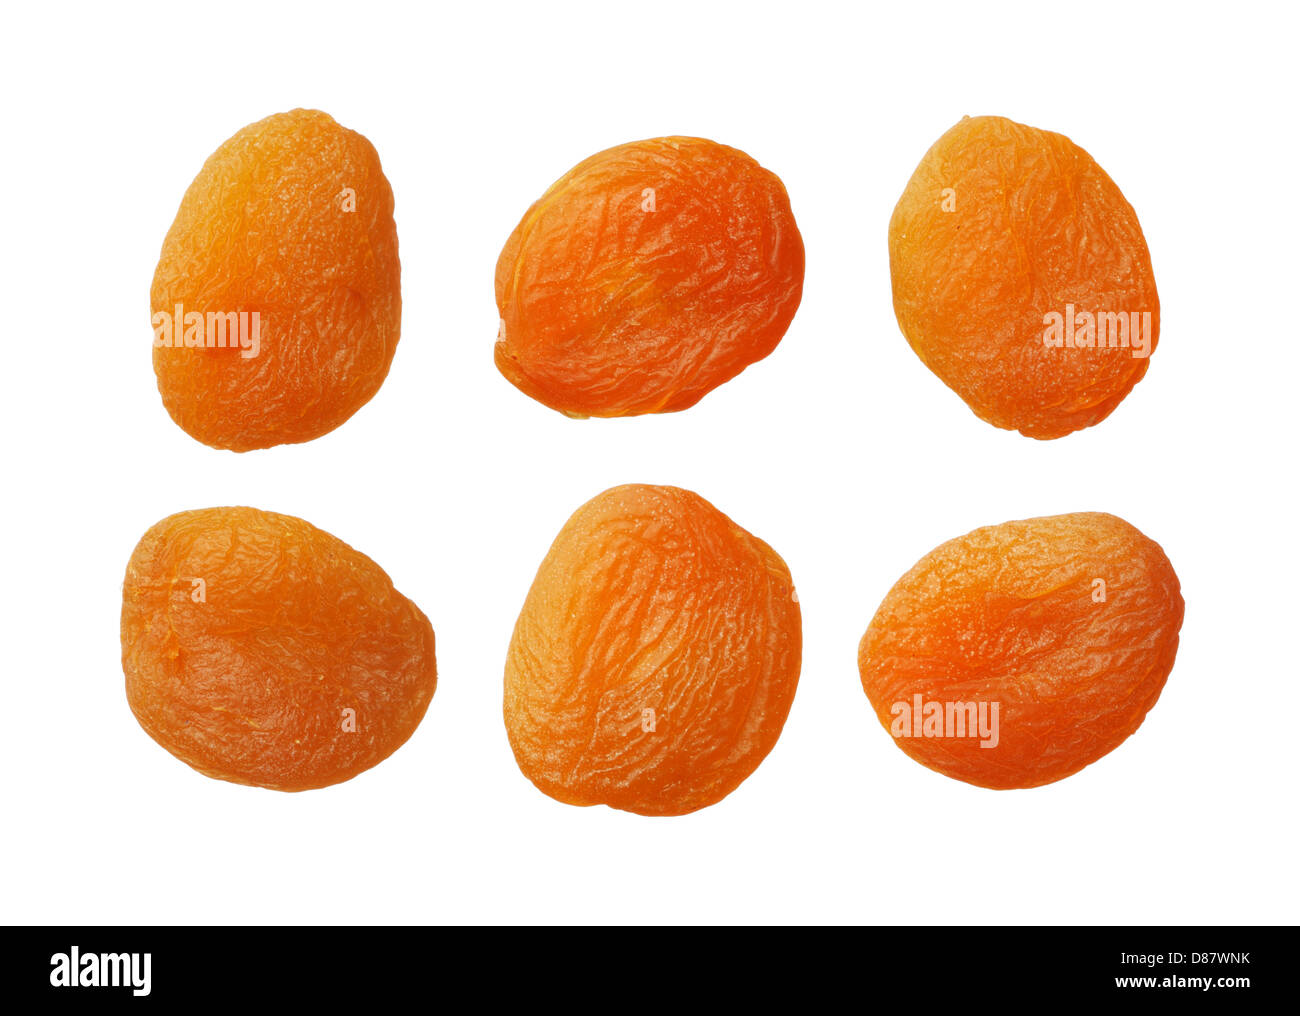 Dried apricots isolated on white background, close up - Stock Image